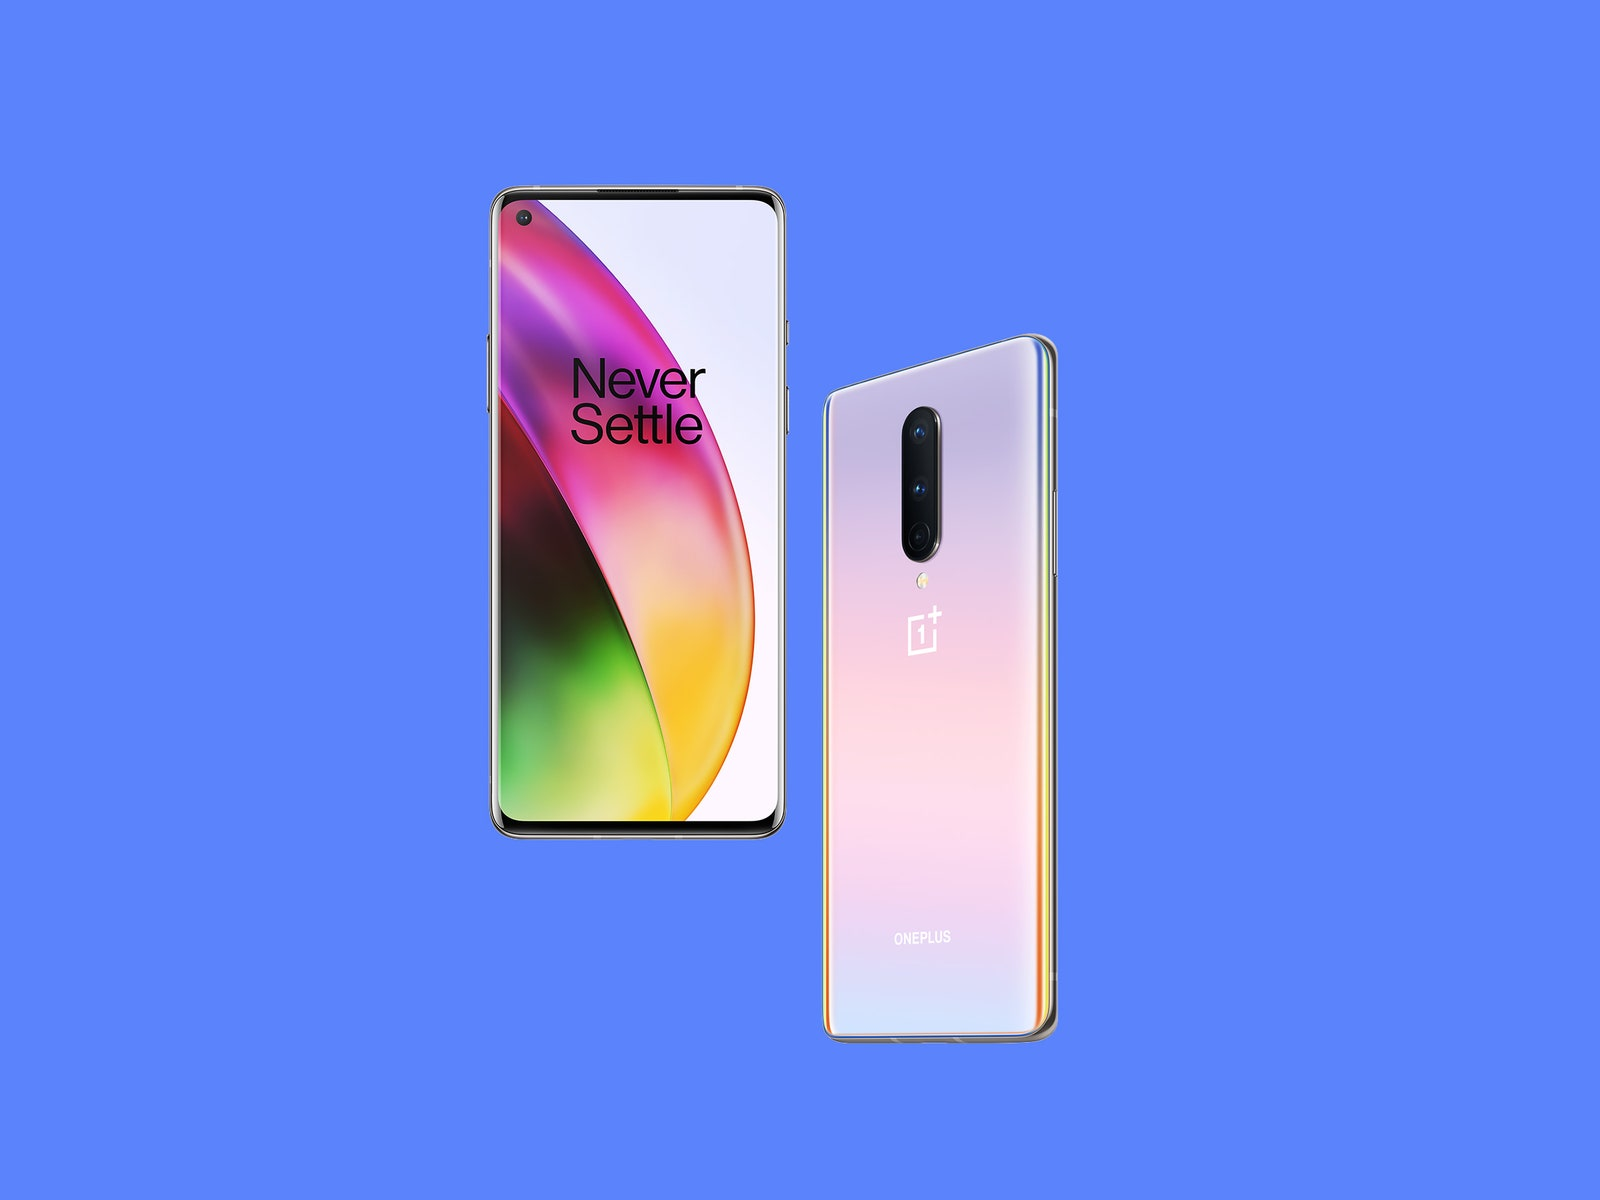 the front and back of the new oneplus 8 phone